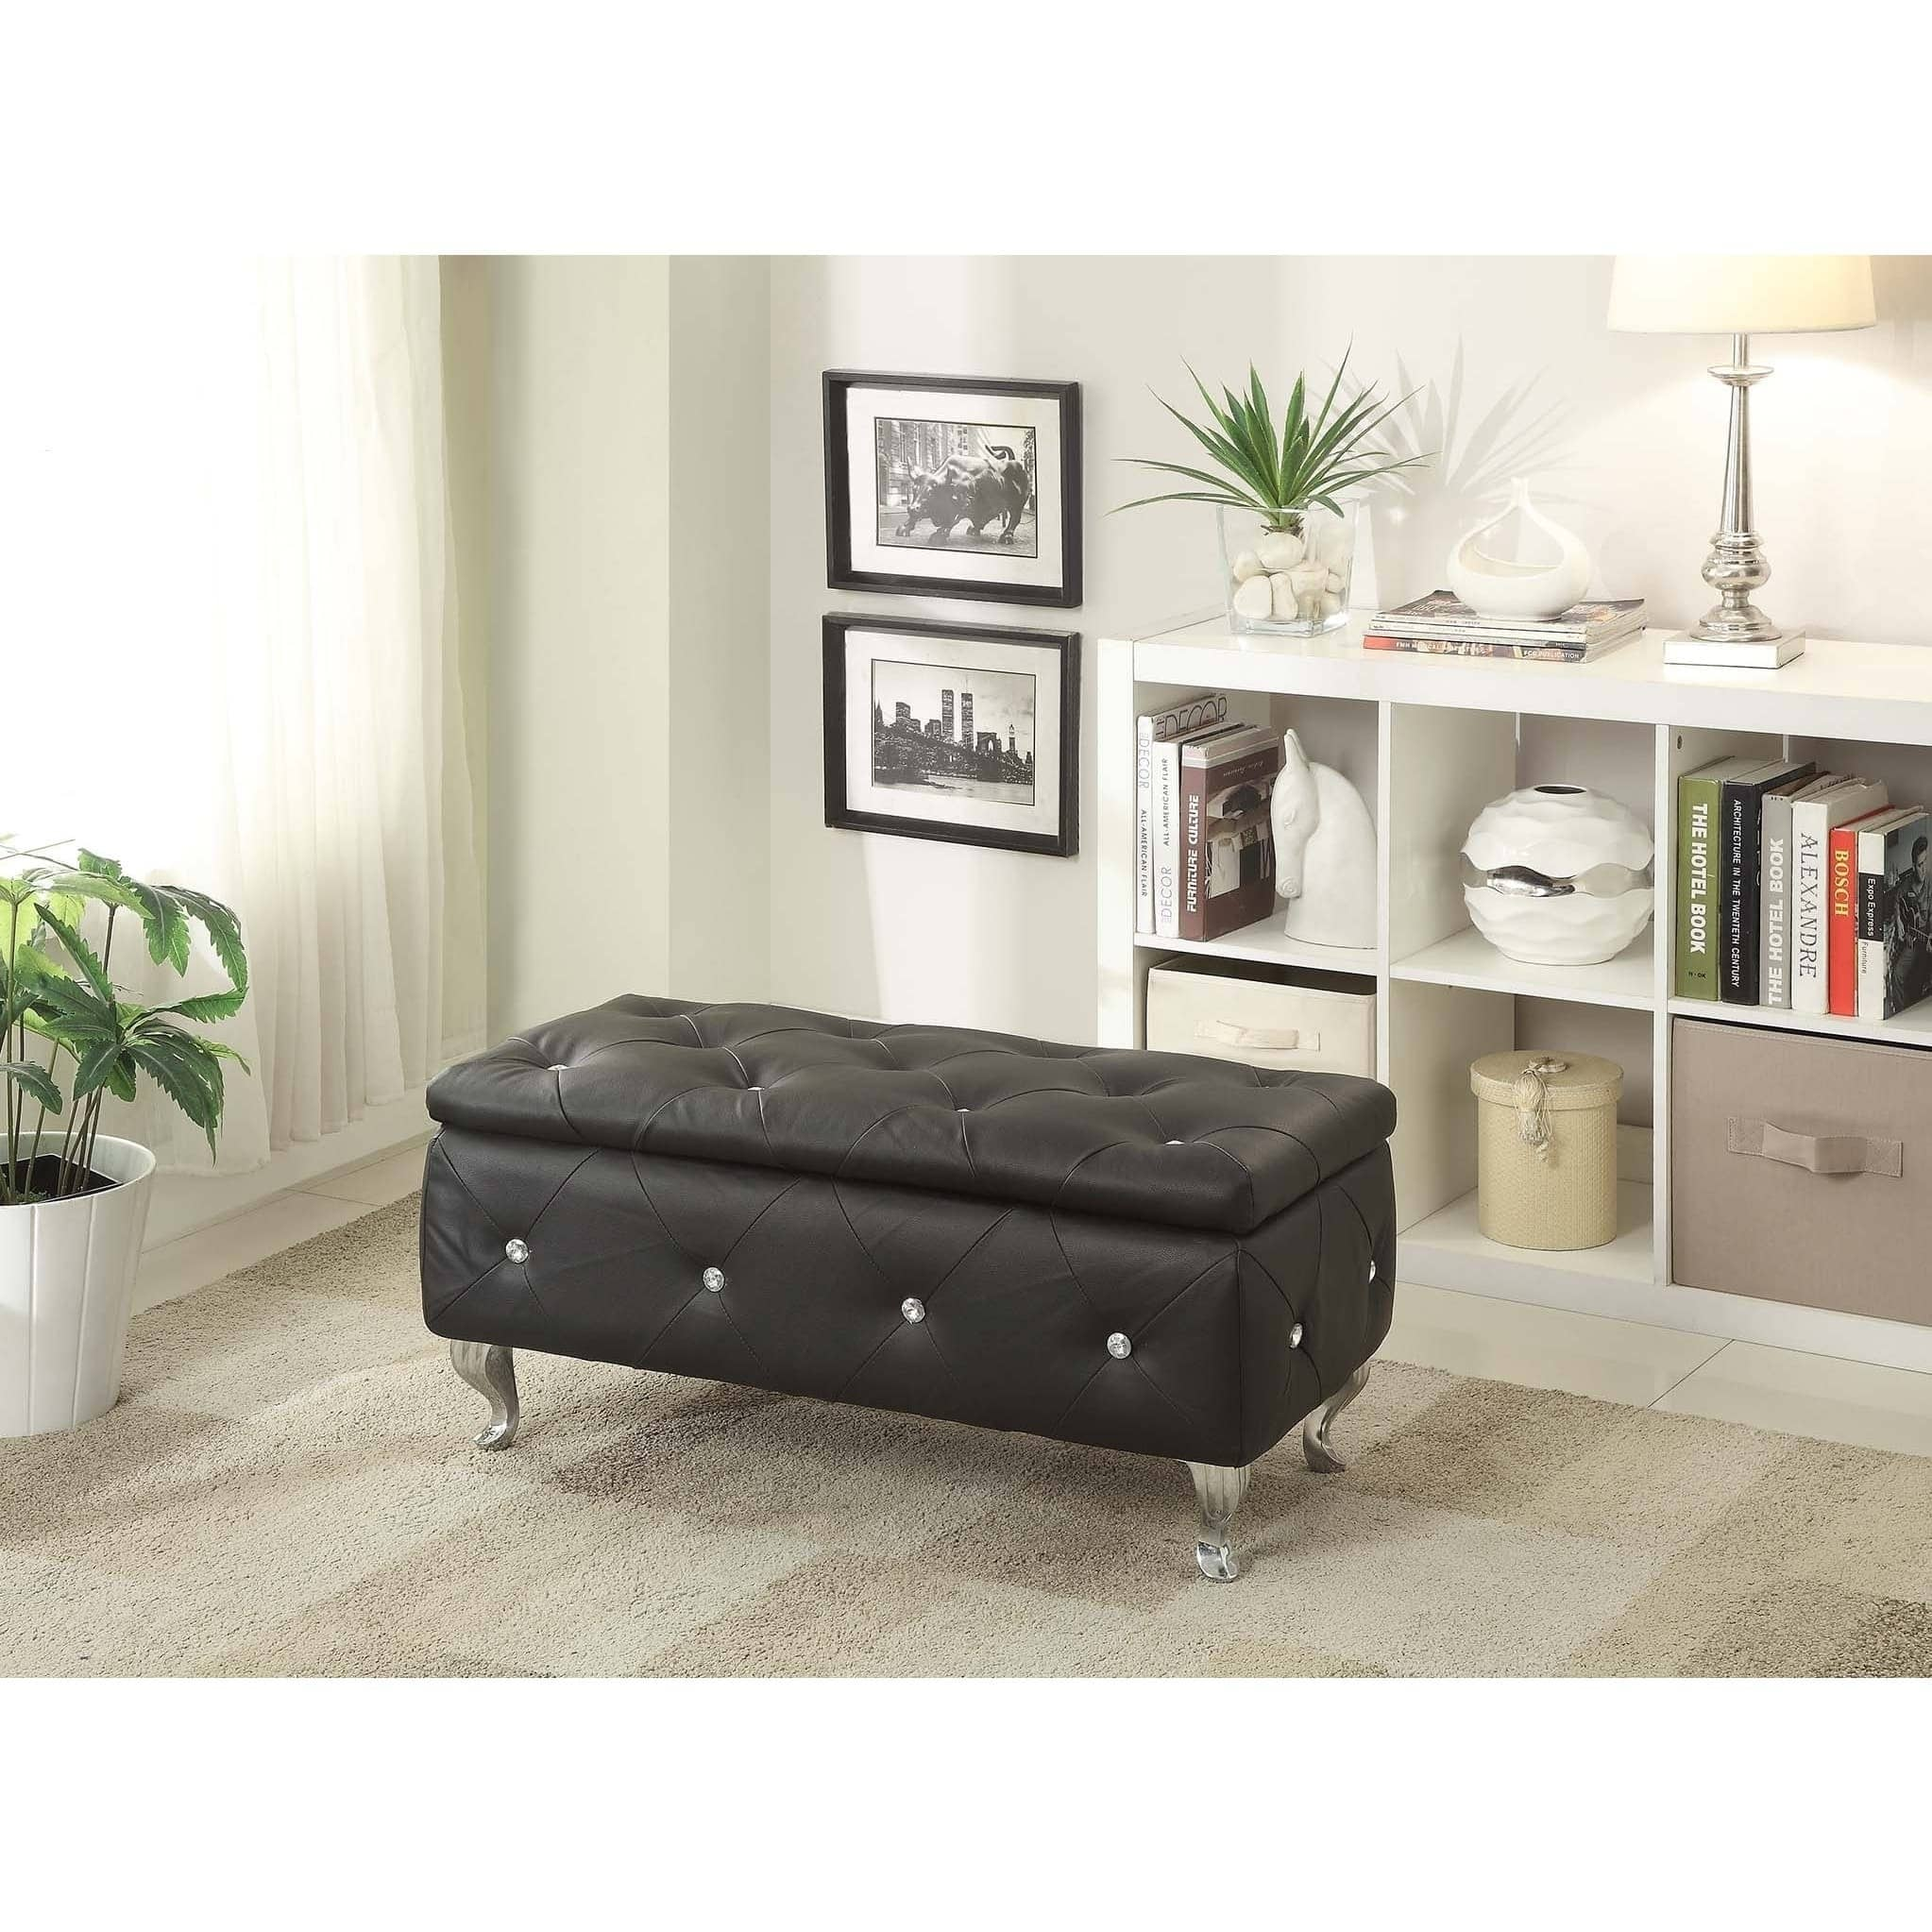 AC Pacific Glam Leather Upholstered Tufted Storage Bench